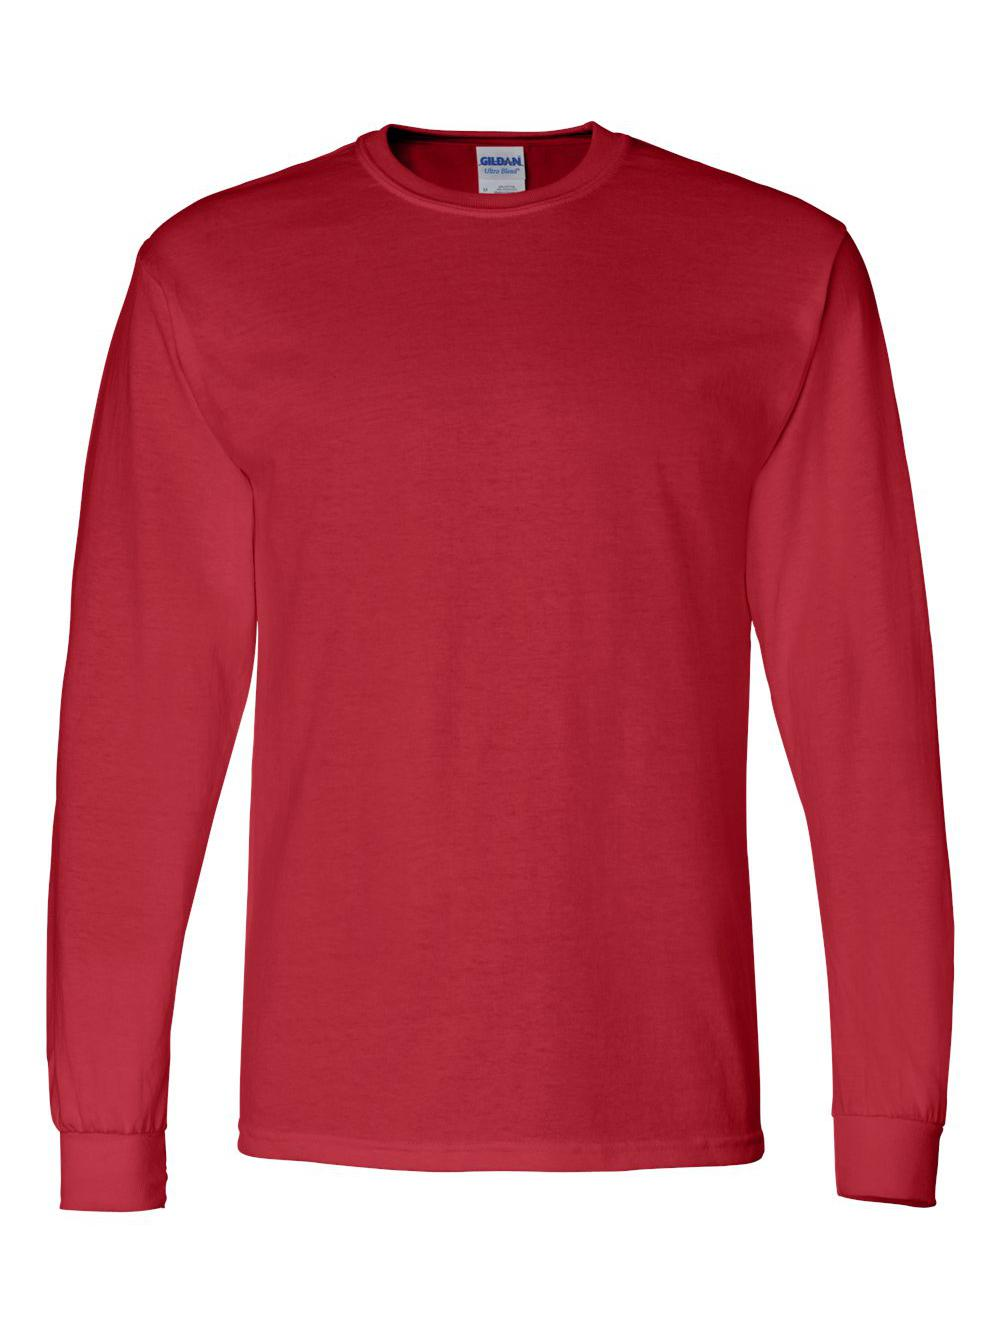 Gildan-DryBlend-50-50-Long-Sleeve-T-Shirt-8400 thumbnail 30